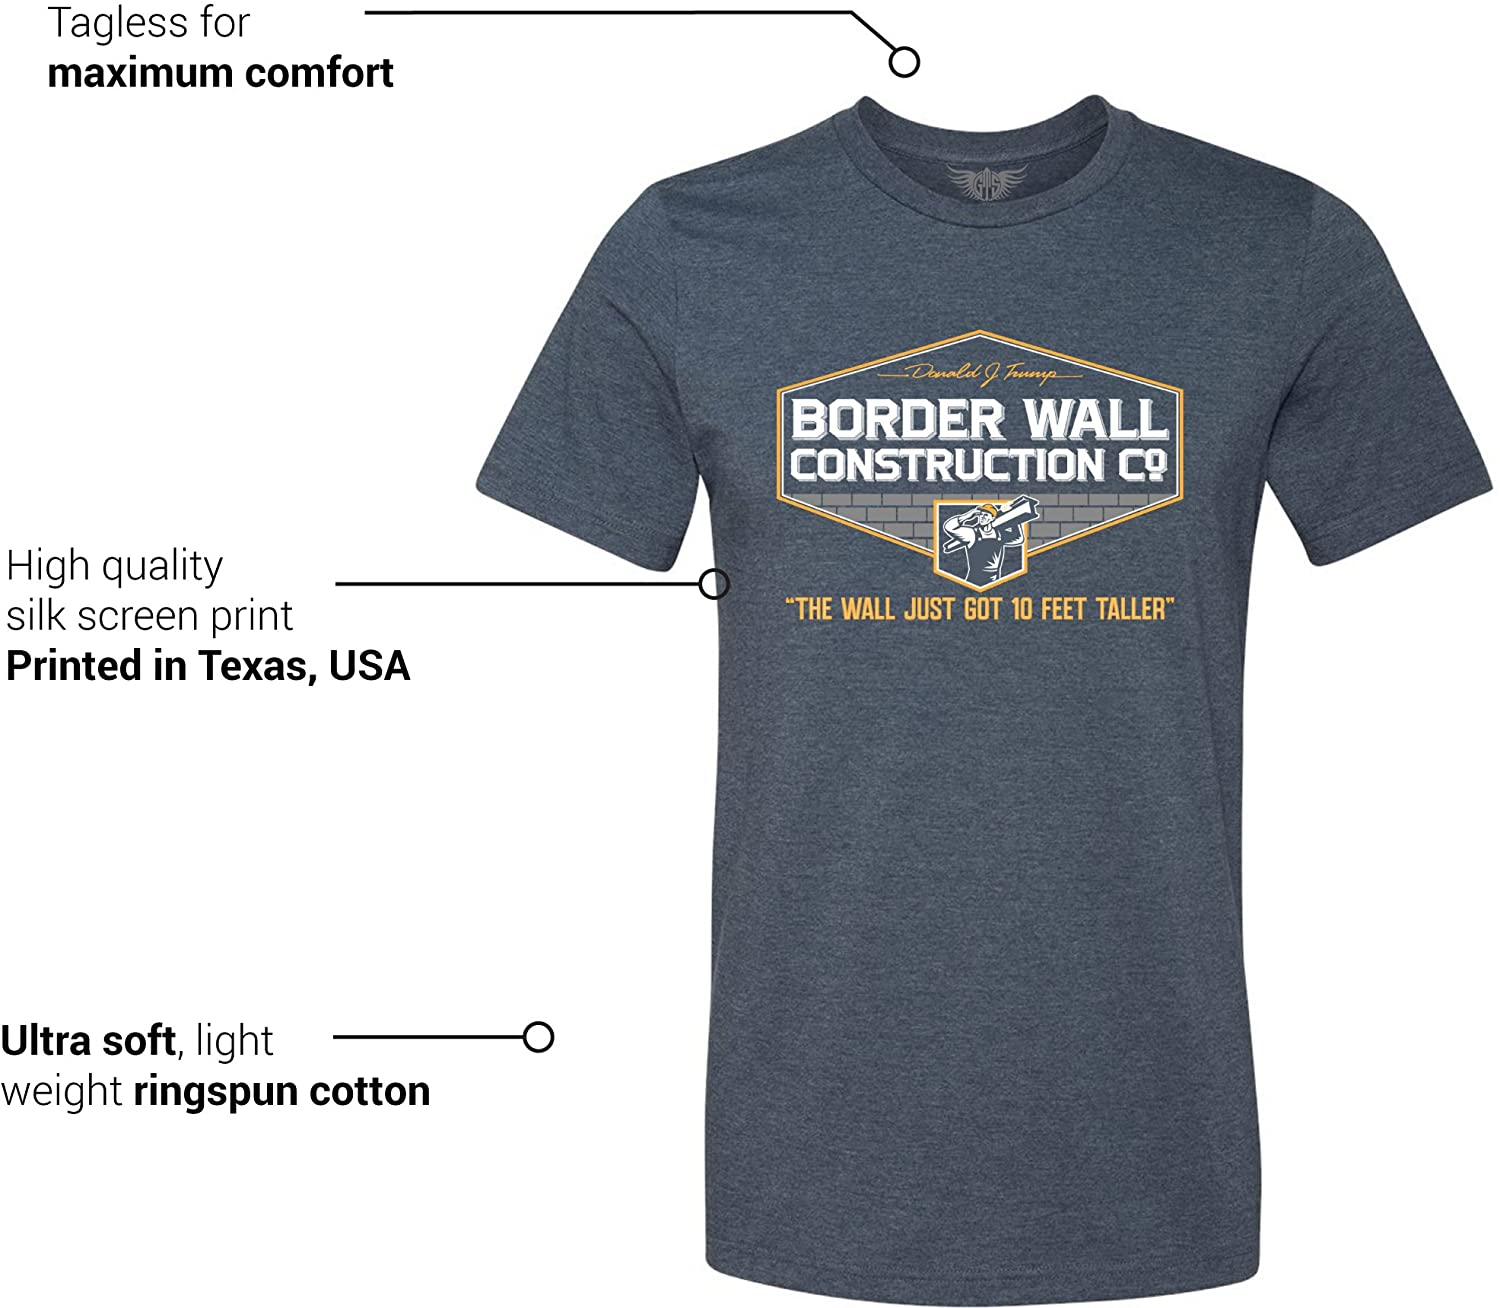 e01e2ccfa Amazon.com: GunShowTees Men's Donald Trump Border Wall Construction Company  T-Shirt: Clothing